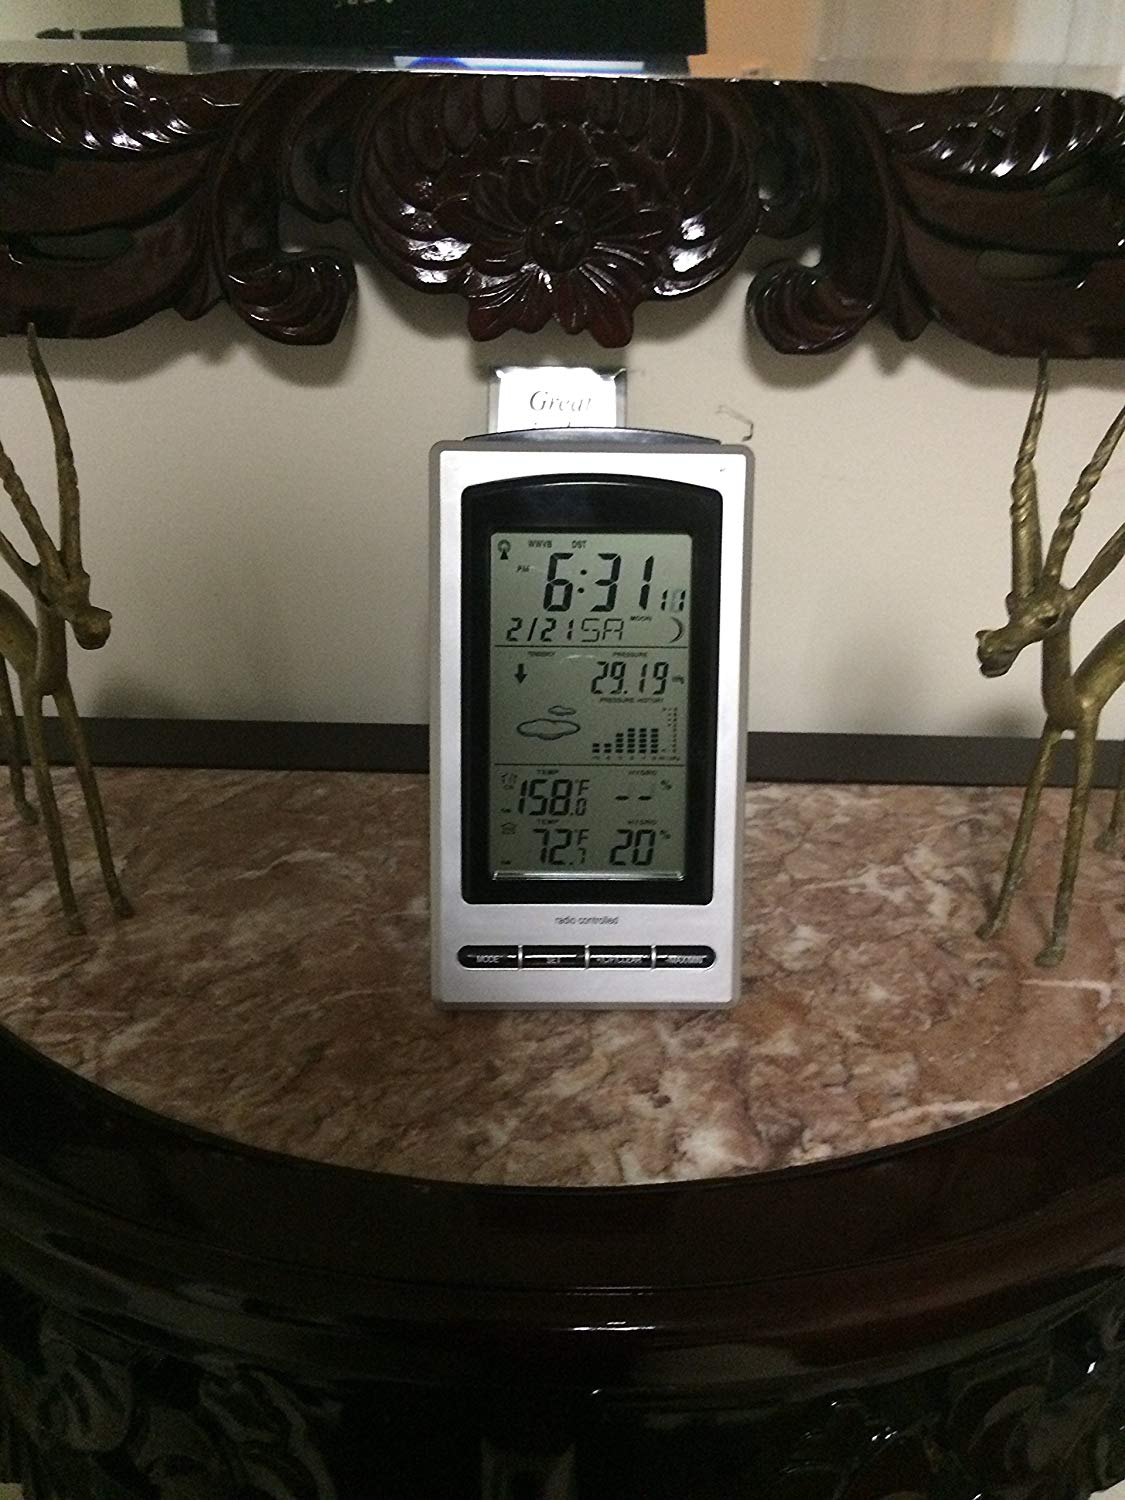 WeatherSpy2.0 WS 1066 Radio controlled, advanced technology, instant reception multi-function Wireless Weather Station,Indoor Outdoor Thermometer, Indoor Outdoor Humidity Monitor / Digital Hygrometer, Digital Barometer with dynamic 24-hour Barometric Pressure graph,Moon Phase with Digital Alarm